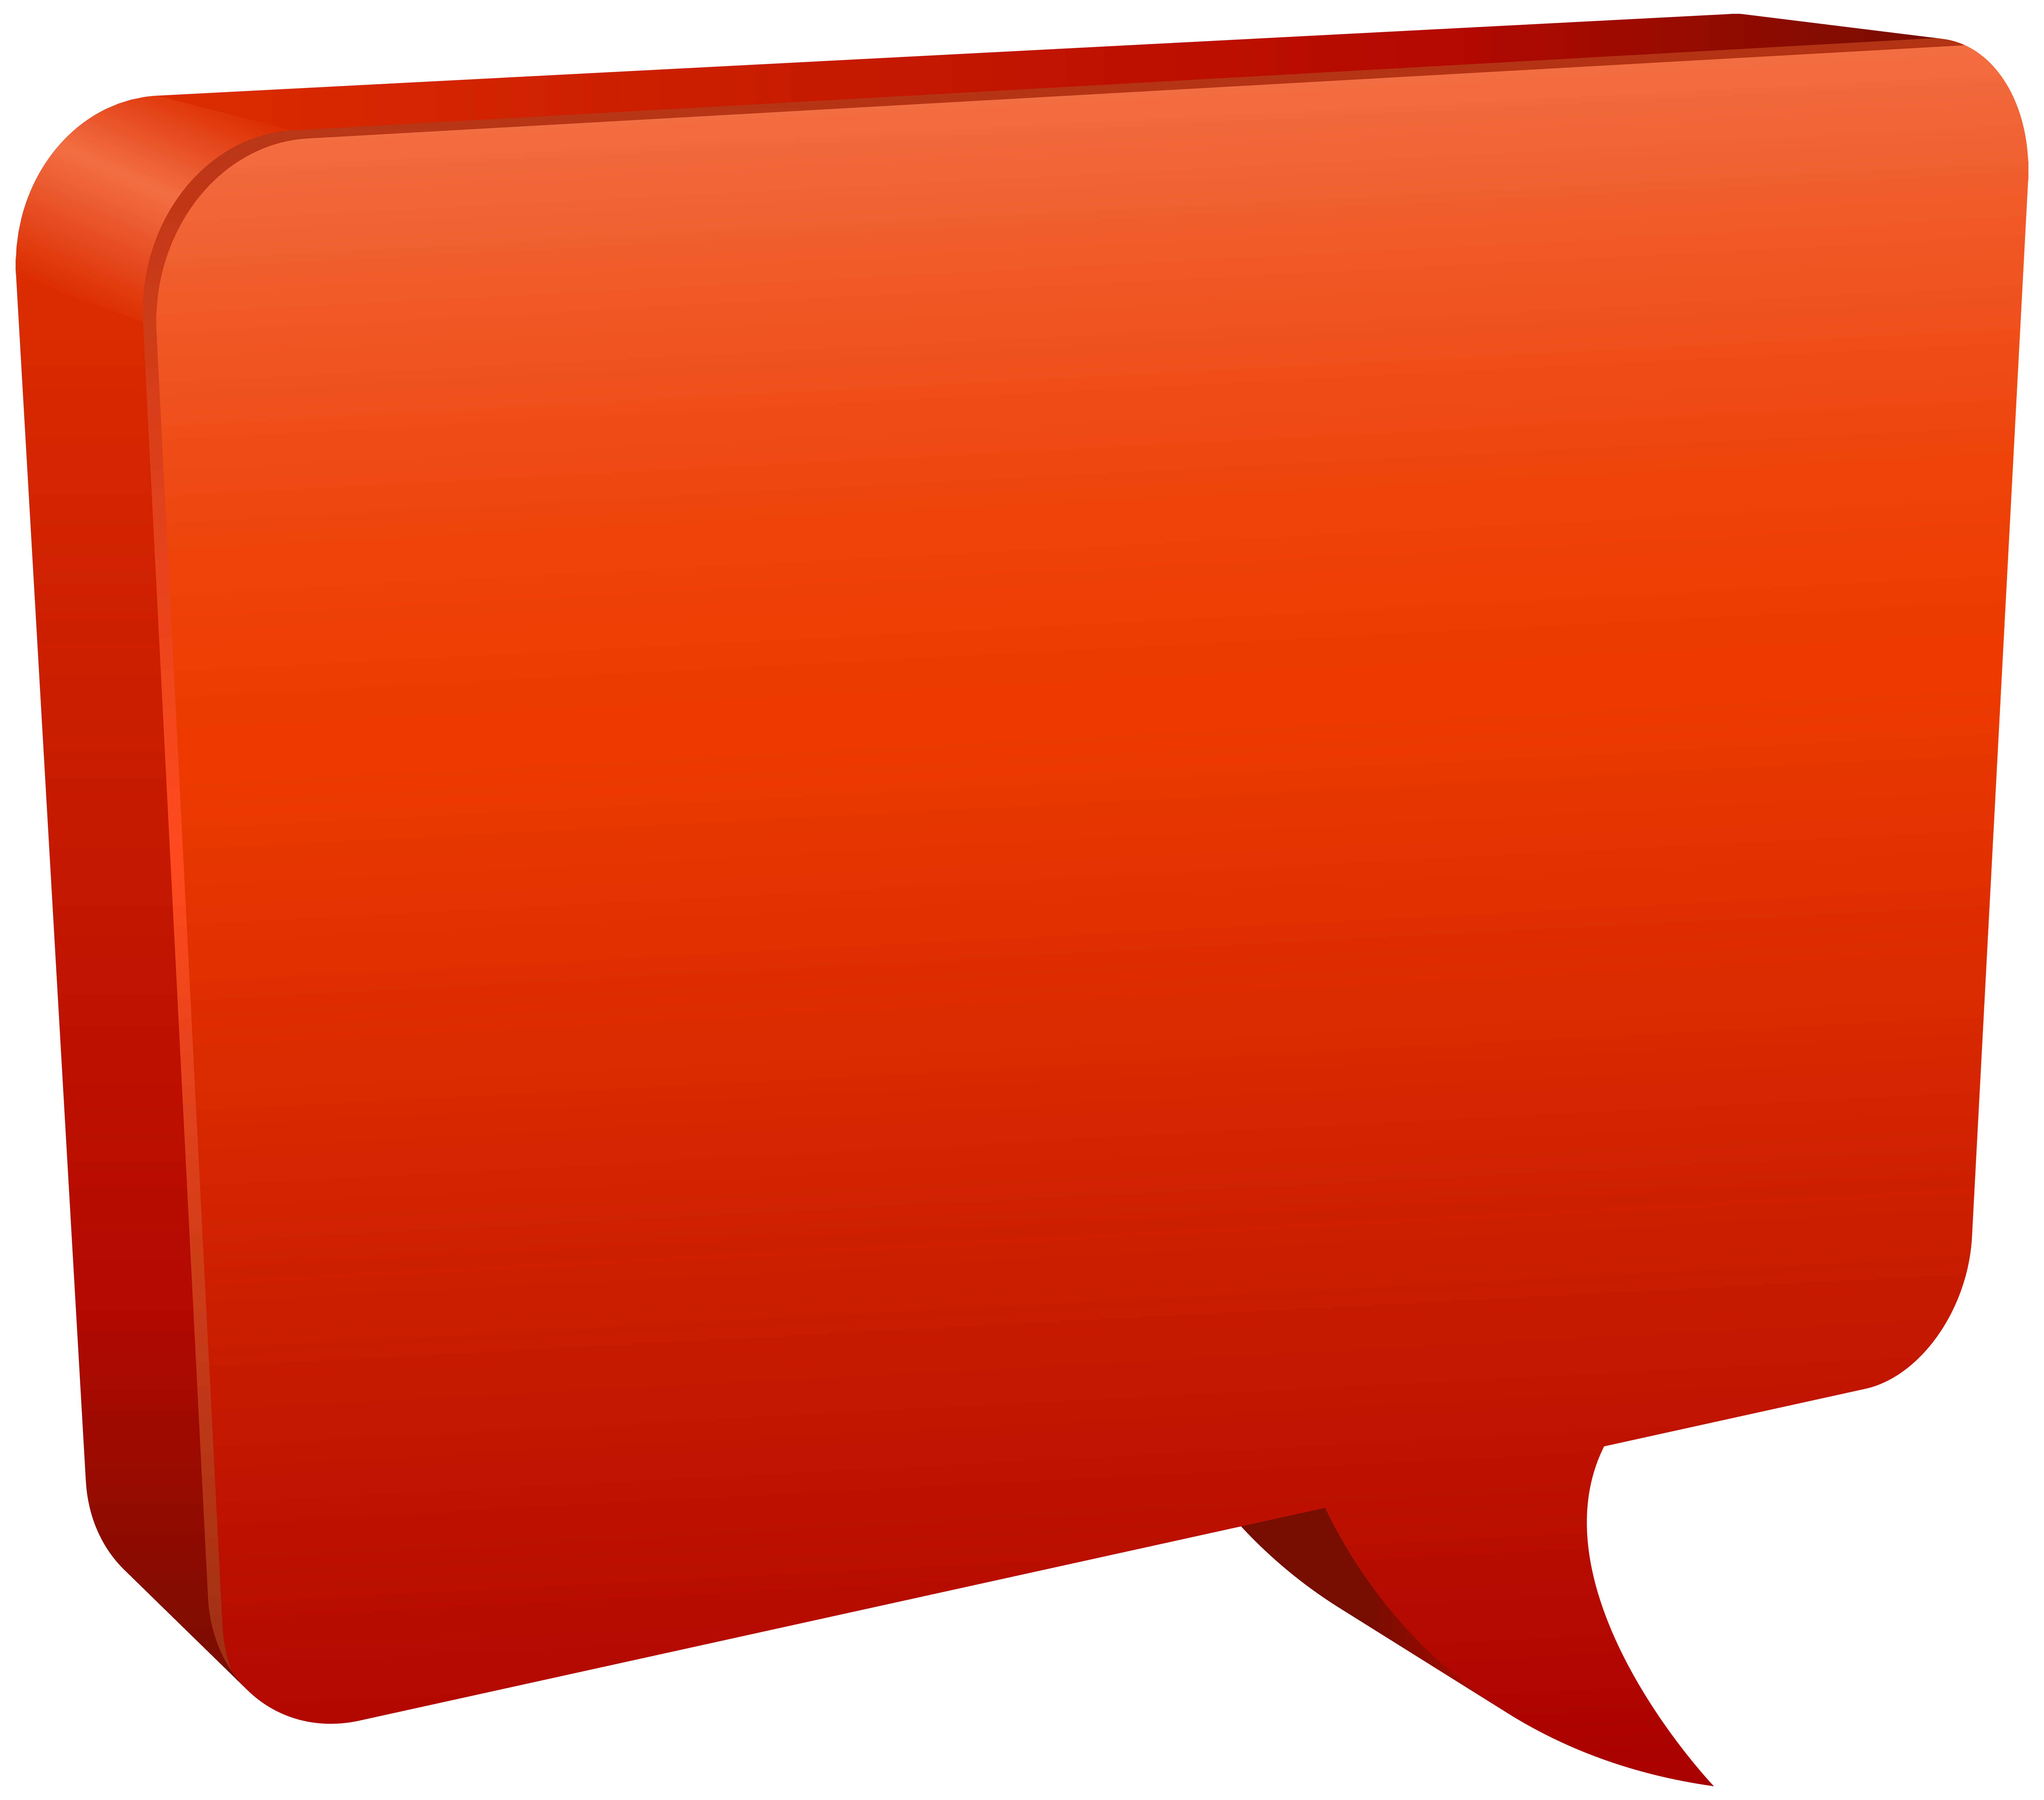 Rectangle clipart speech bubble. Red png clip art